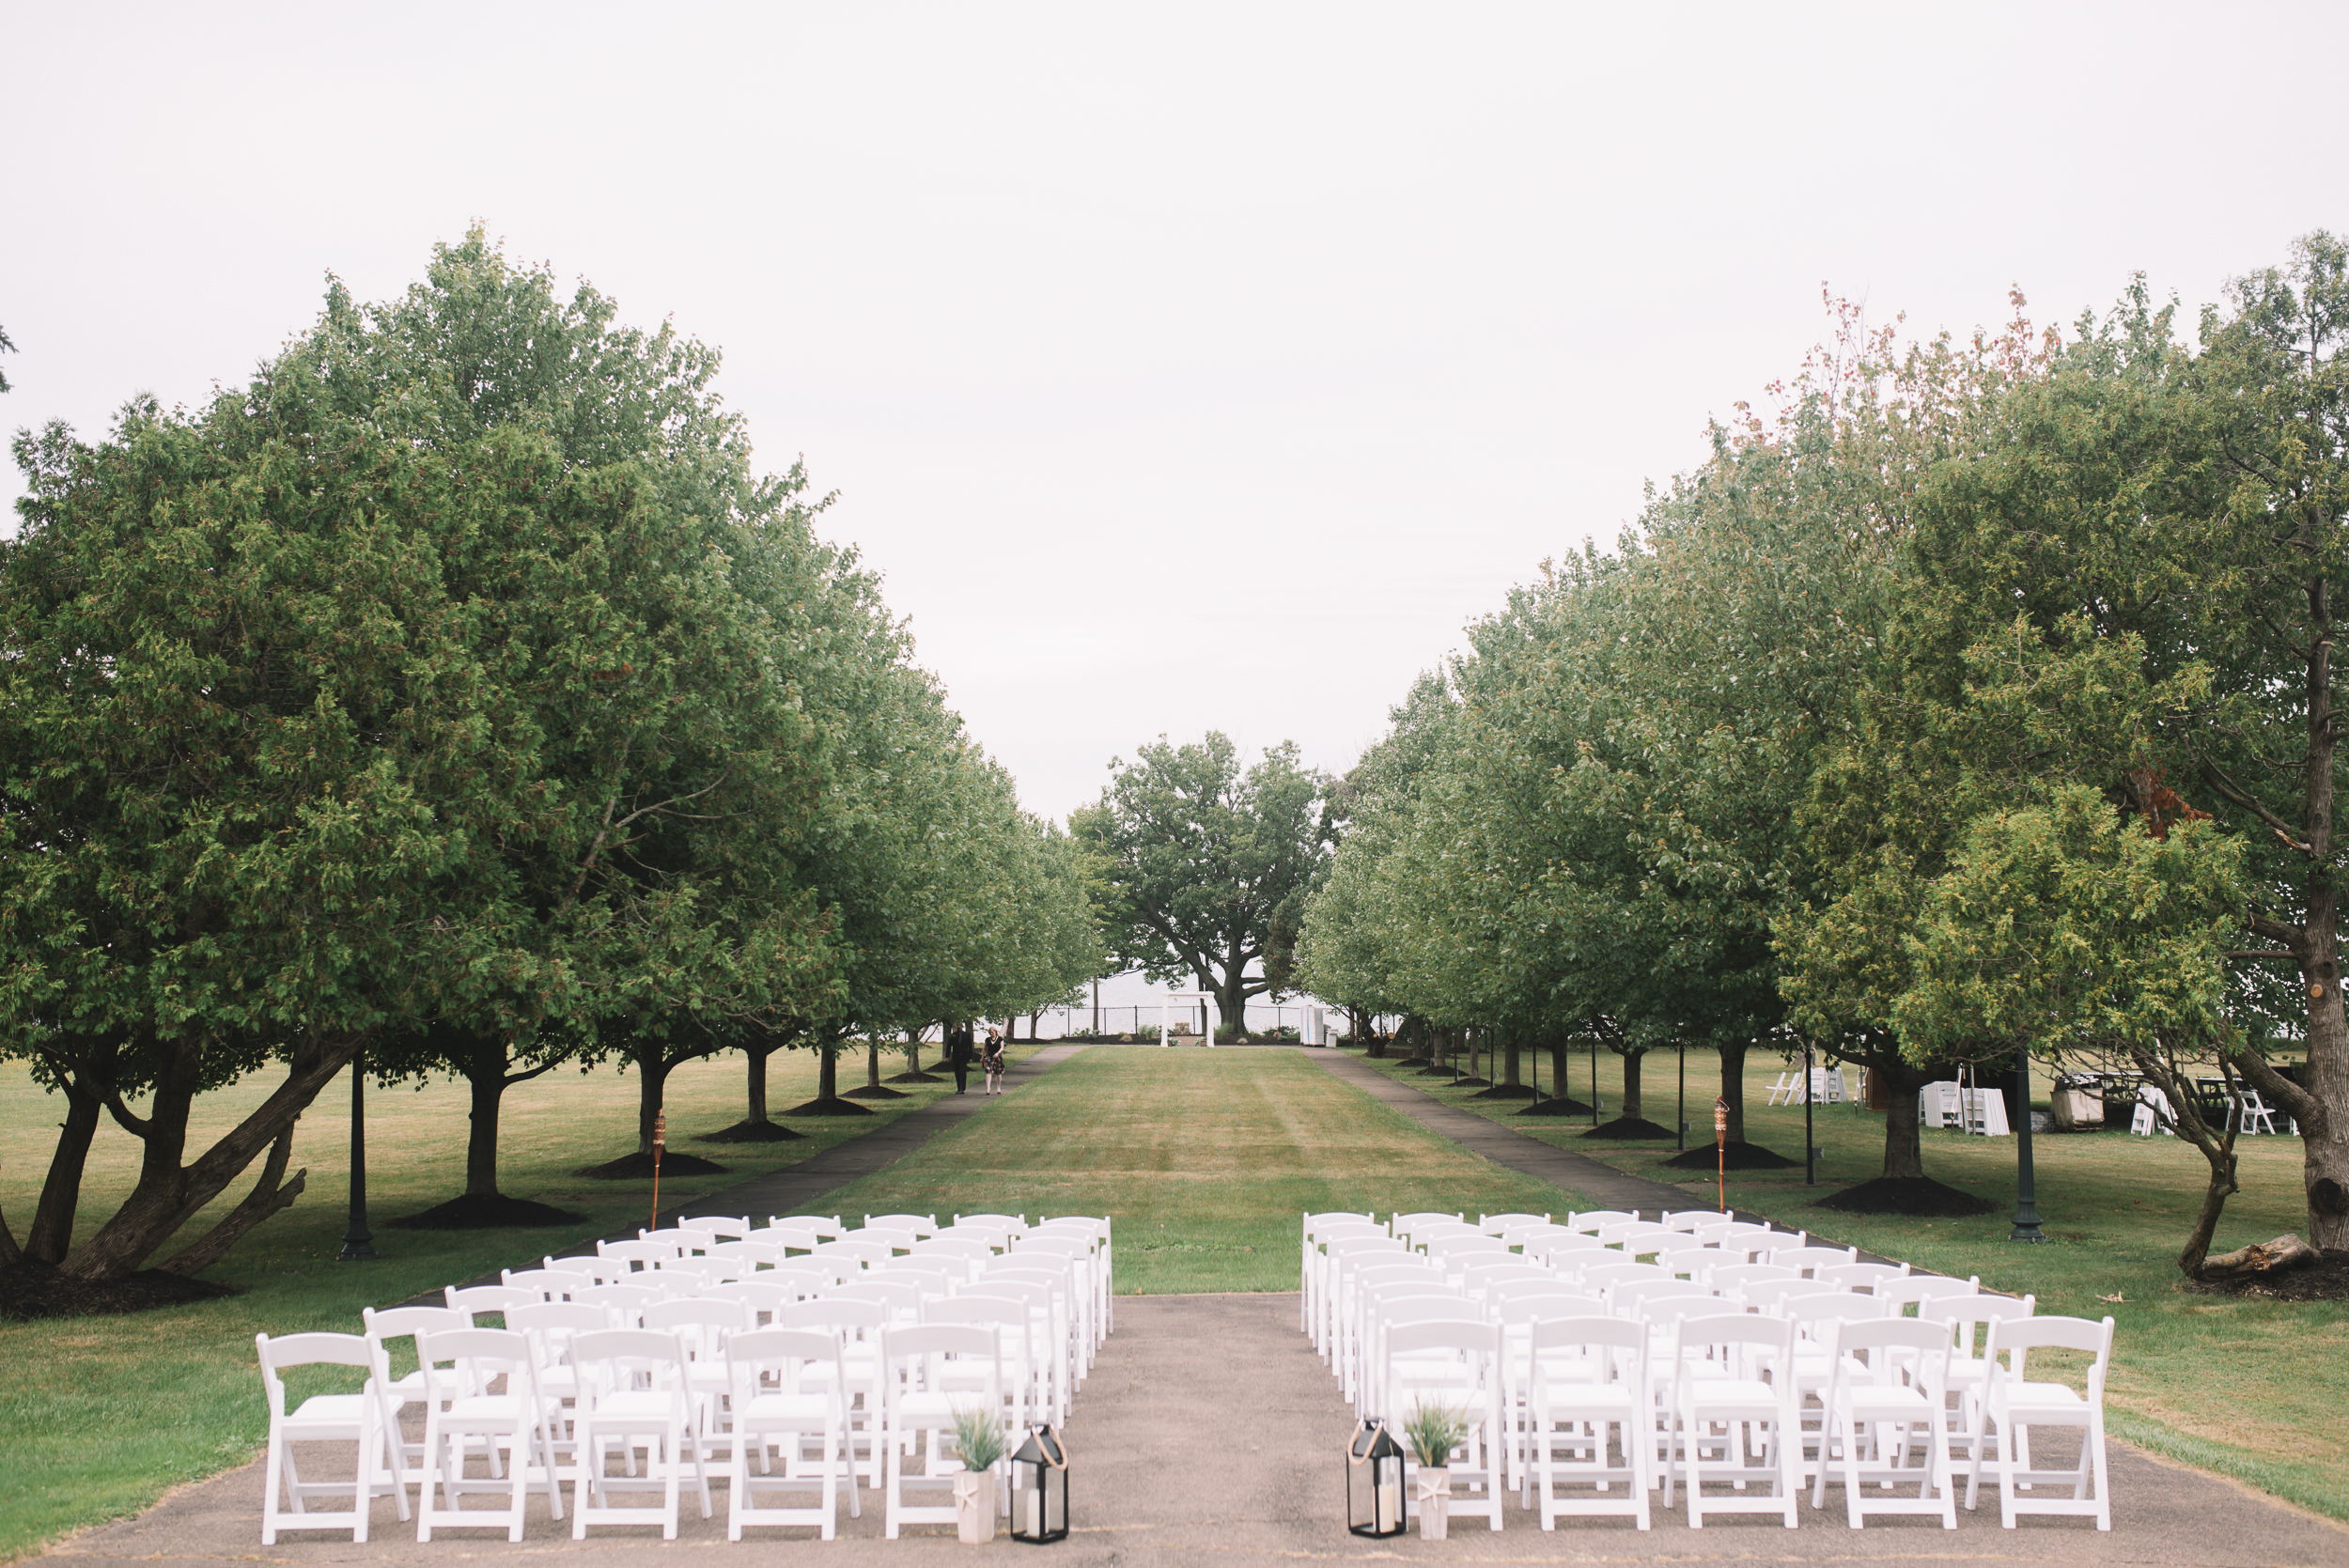 The venue is gorgeously lined with trees, and with the lake in the background, it's a perfect setting for large and small settings alike. It's definitely one of our favorite locations in the Buffalo area for Wedding photos.